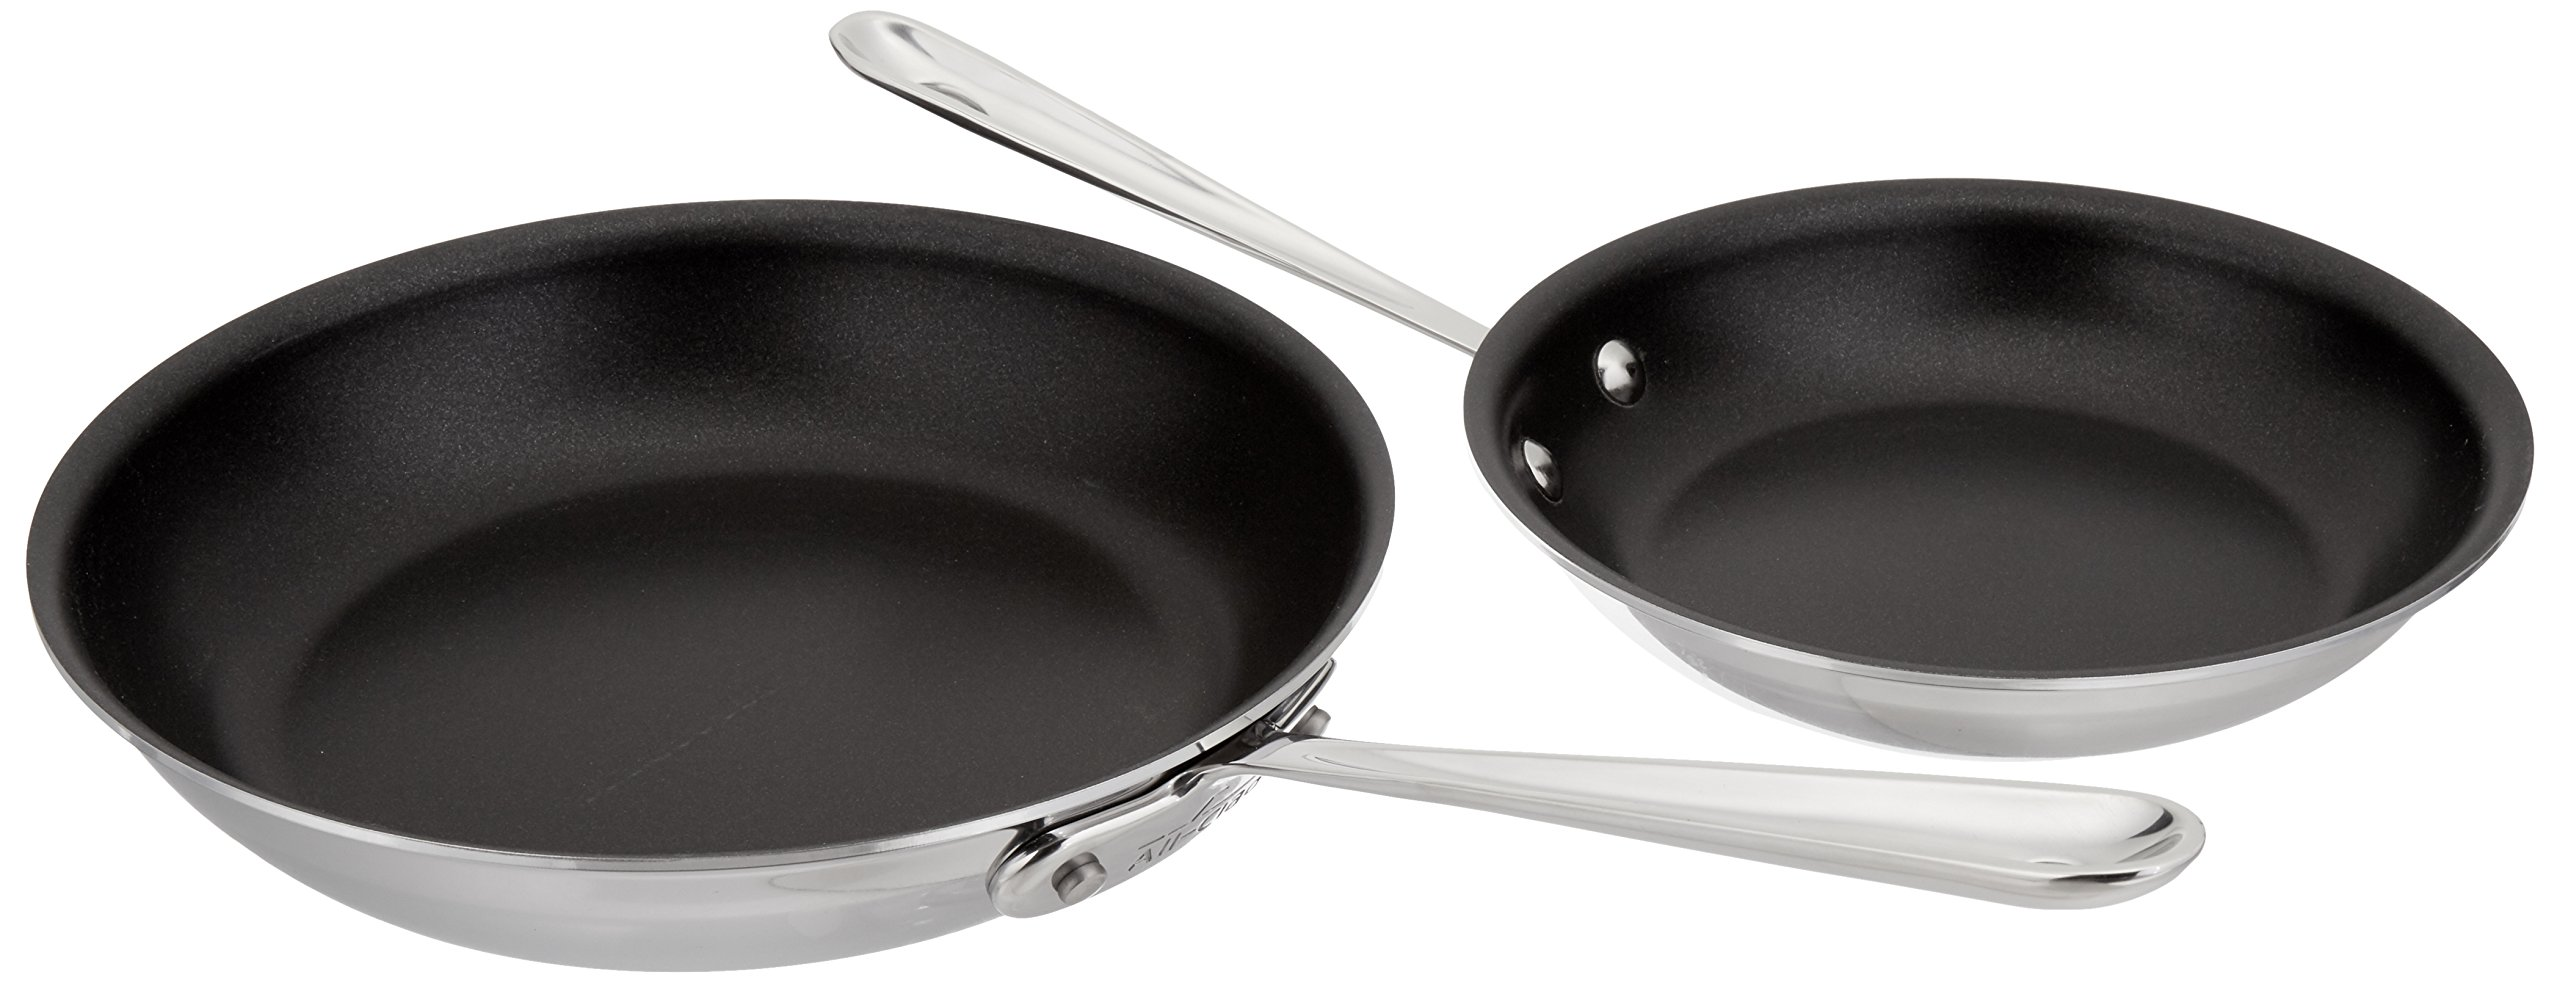 All-Clad 410810 NSR2 Stainless Steel Dishwasher Safe Oven Safe PFOA-free Nonstick 8-Inch and 10-Inch Fry Pan Set, 2-Piece, Silver by All-Clad